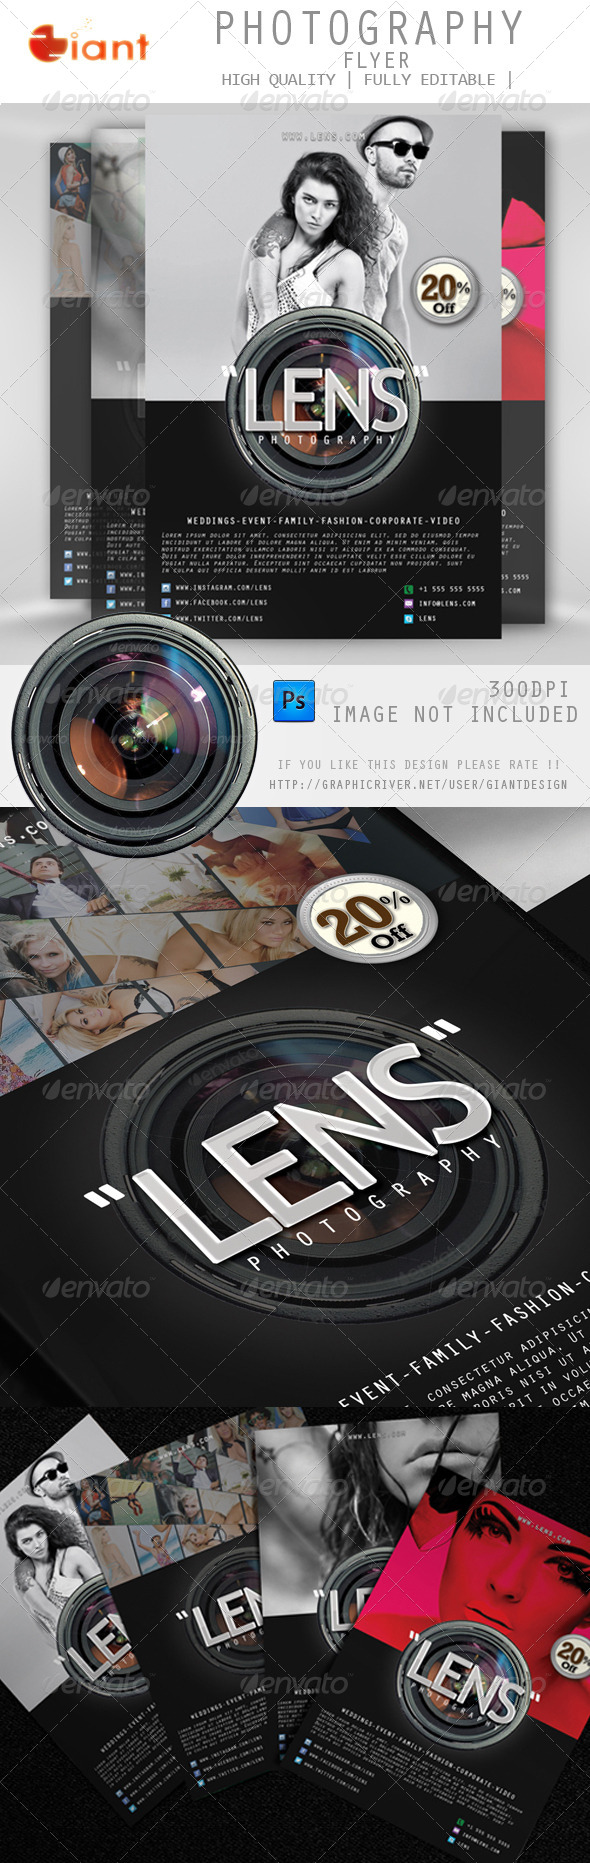 GraphicRiver Photography Flyer 5814967